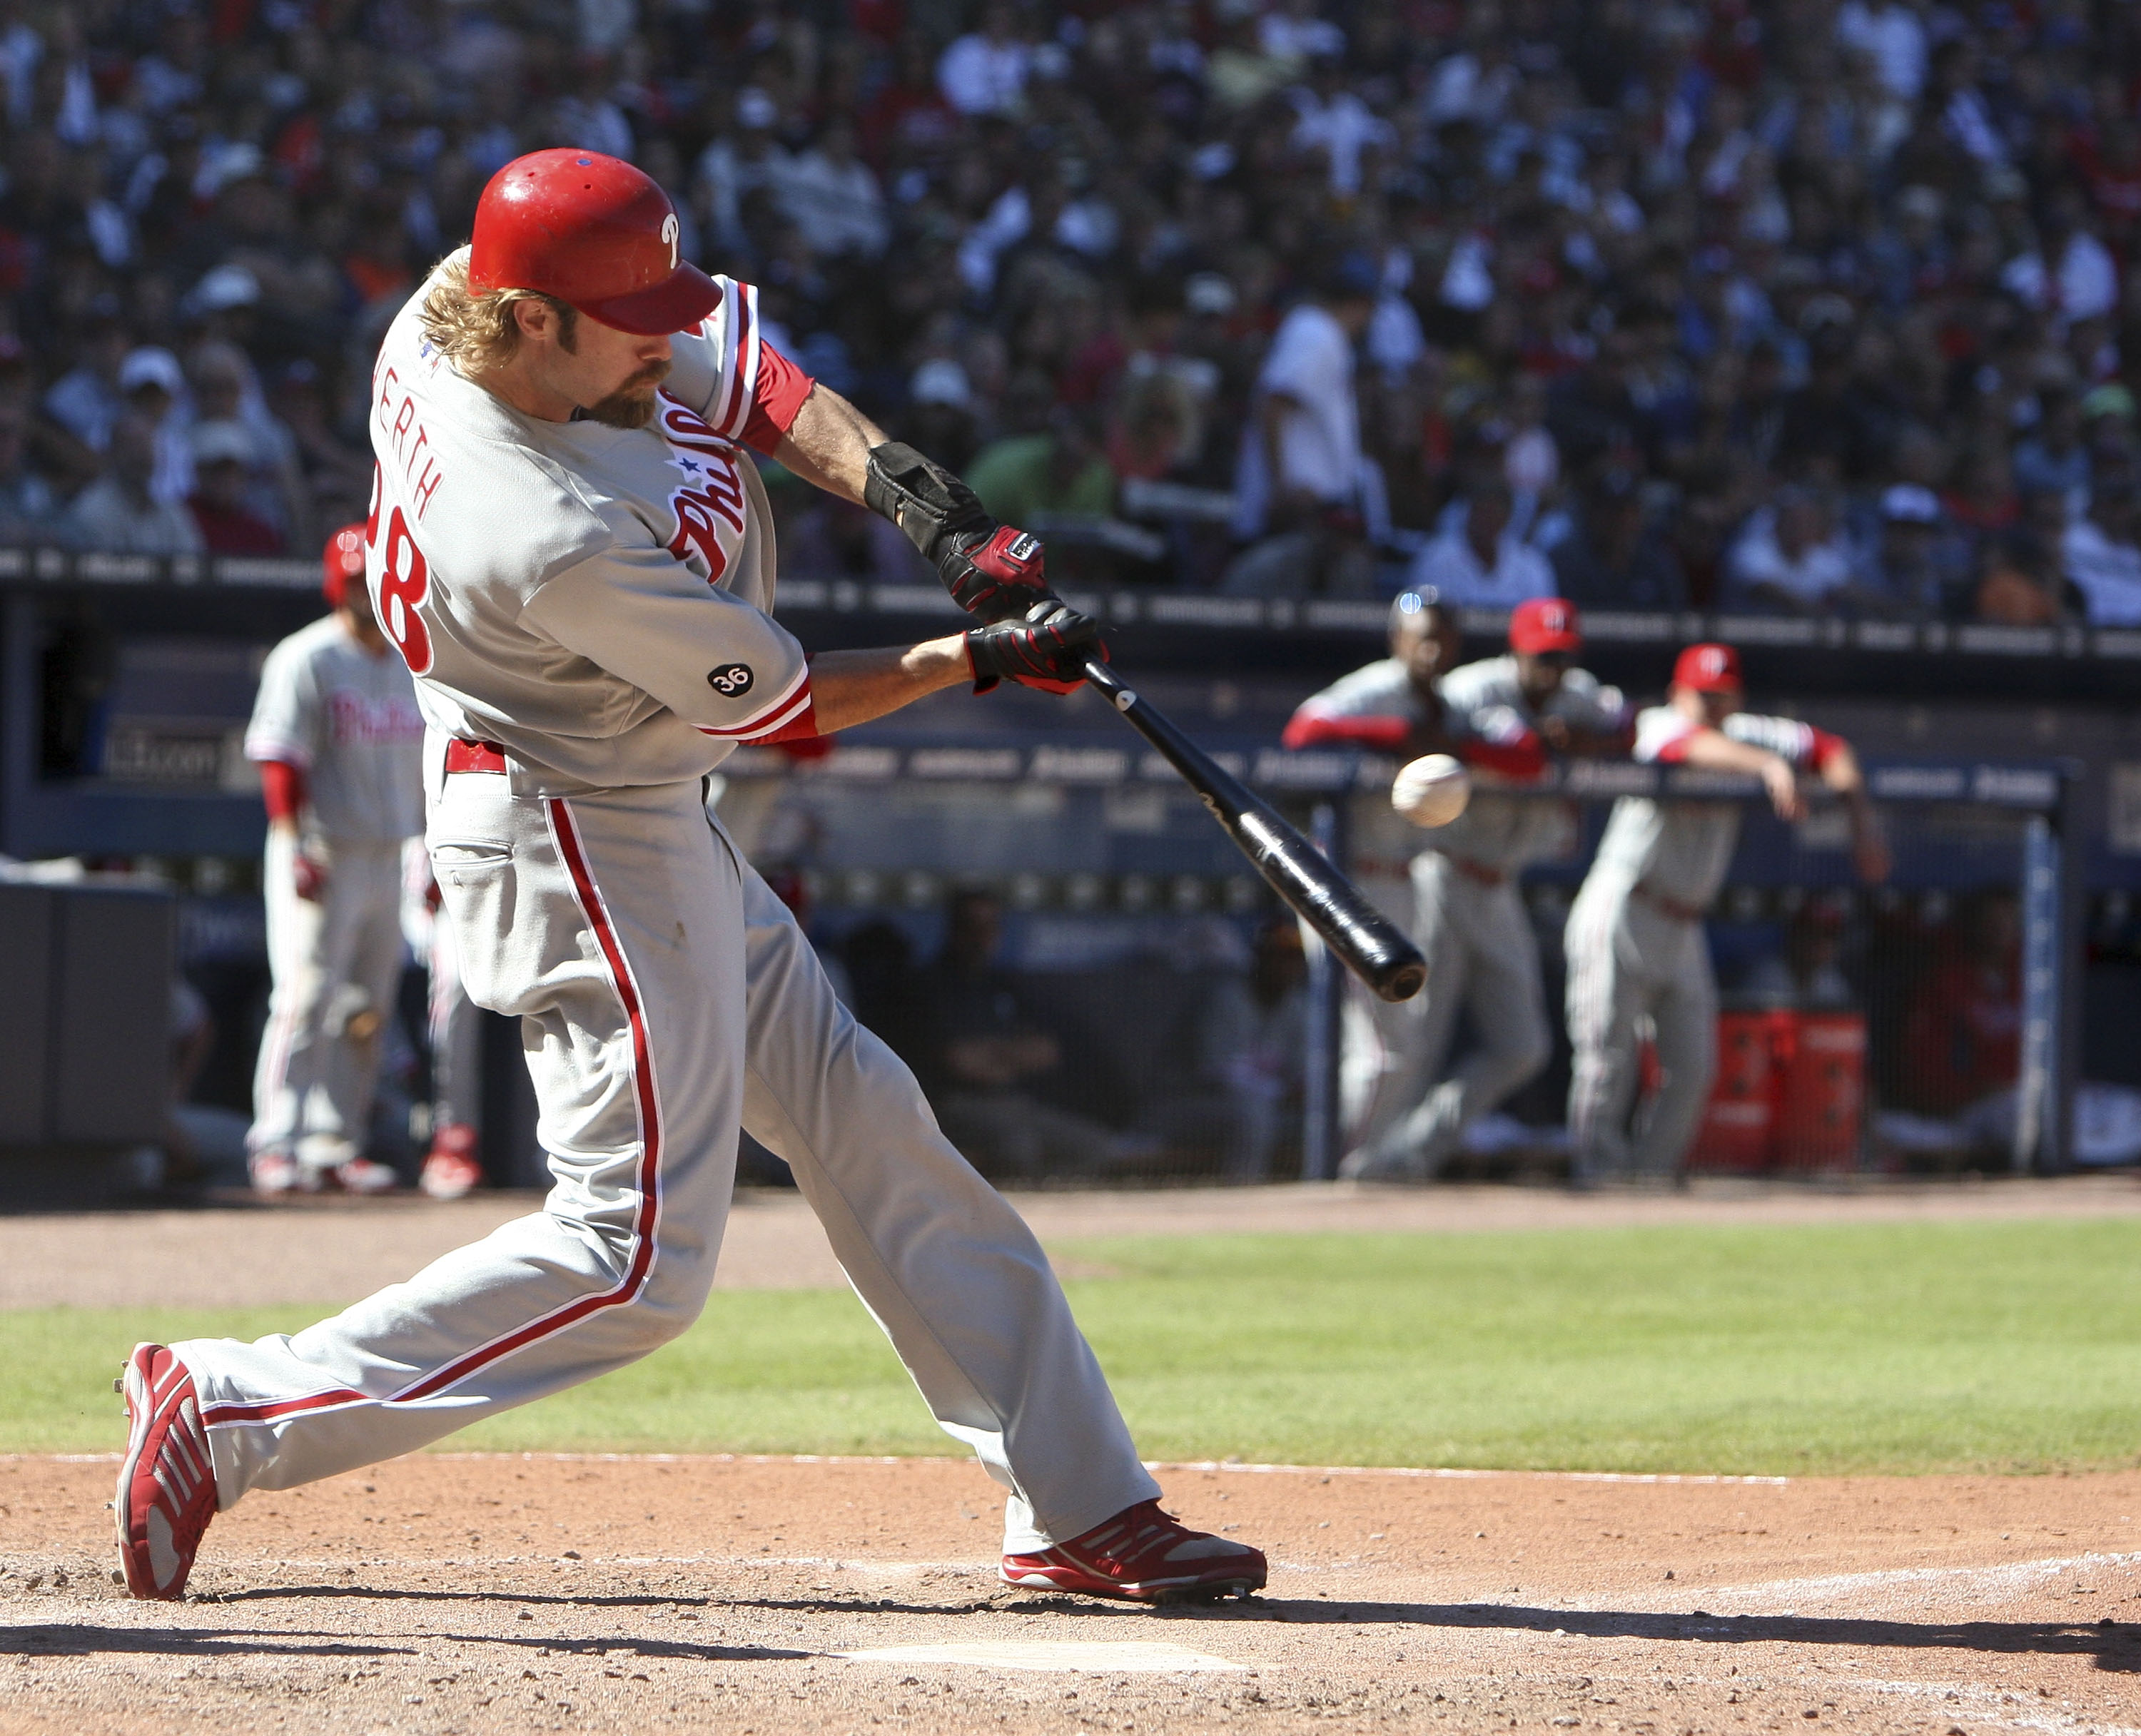 ATLANTA - OCTOBER 3:  Outfielder Jason Werth #28 of the Philadelphia Phillies connects for a two run home run during the game against the Atlanta Braves at Turner Field on October 3, 2010 in Atlanta, Georgia.  The Braves beat the Phillies 8-7.  (Photo by